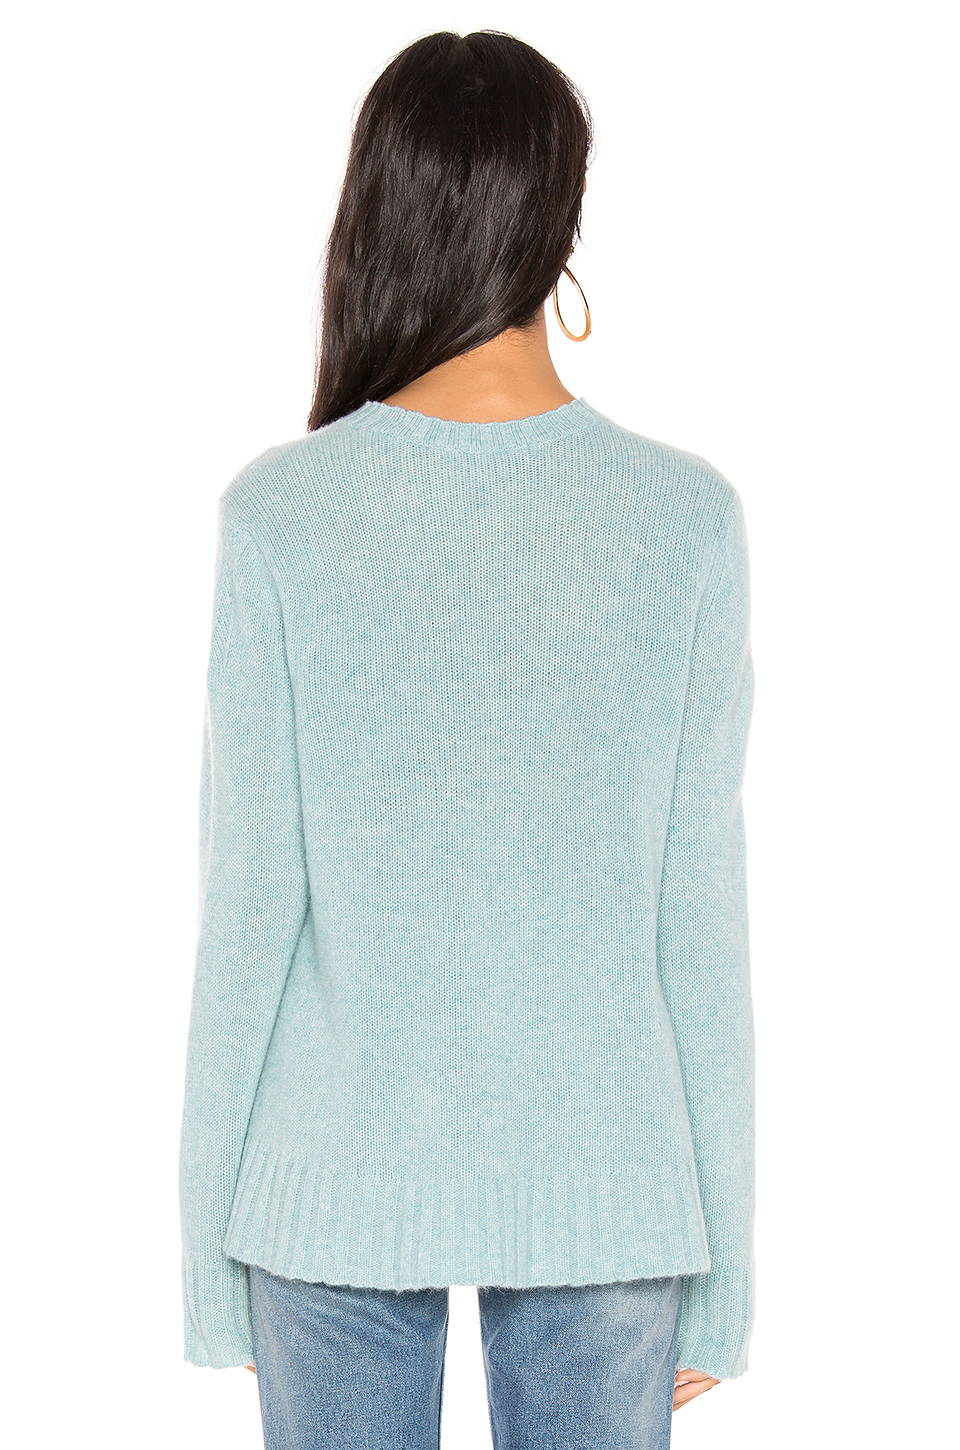 360CASHMERE London Sweater